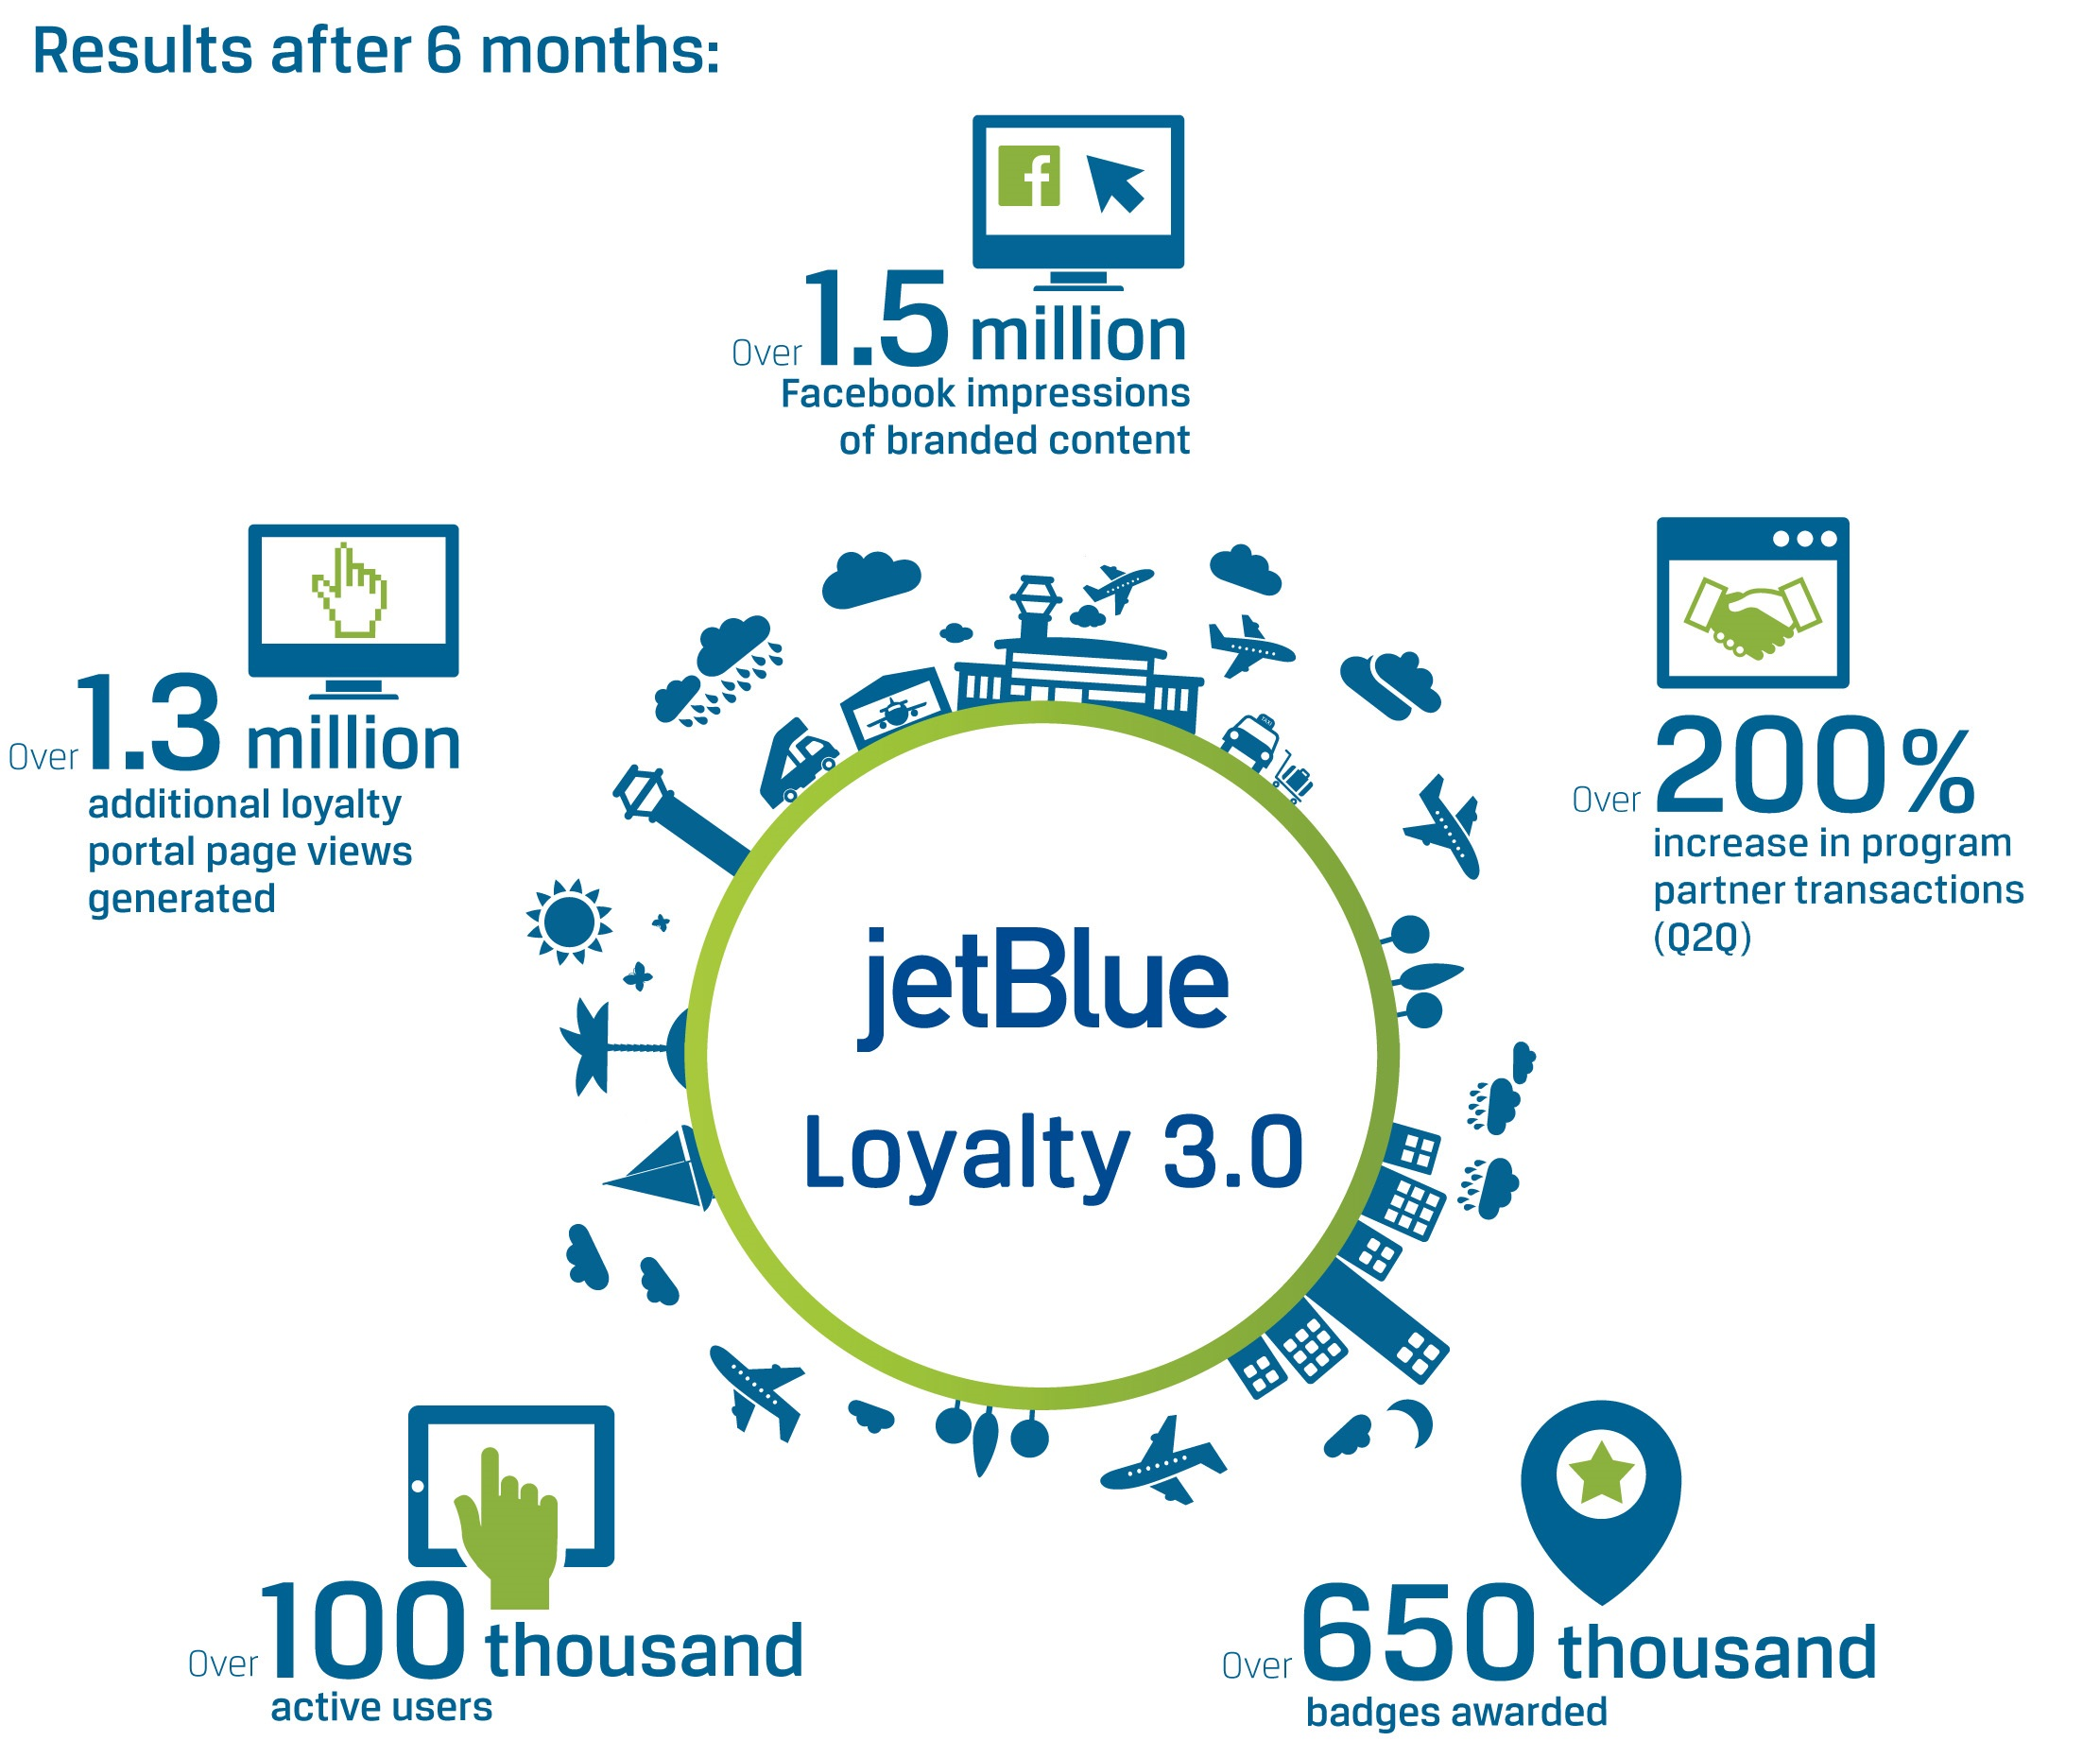 research paper for jetblue Jetblue should research the option of increasing overall corporate travel  the  purpose of this paper was to examine jetblue's business.